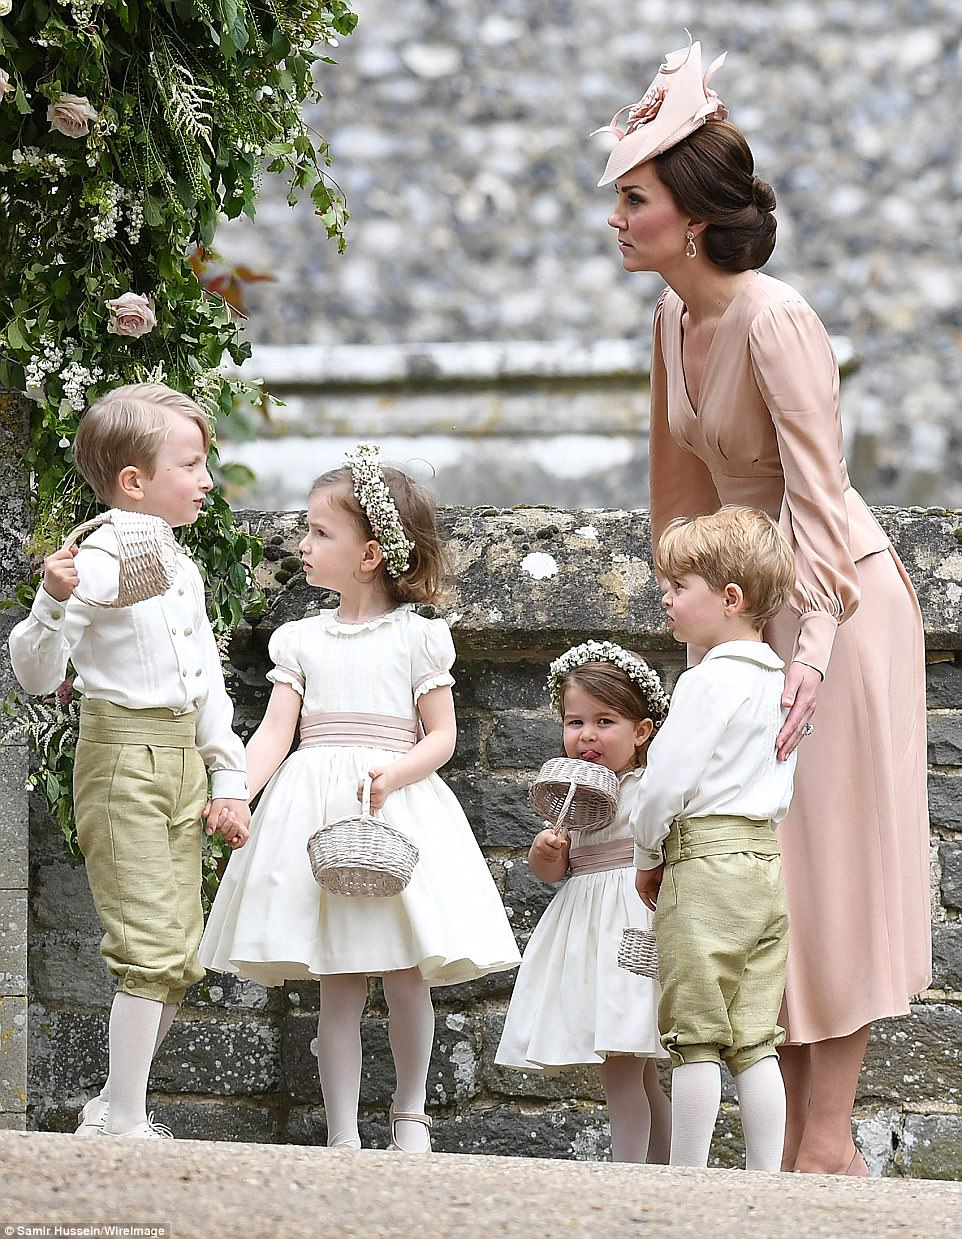 George and Charlotte were escorted by their mother the Duchess of Cambridge who was a vision in pale peach